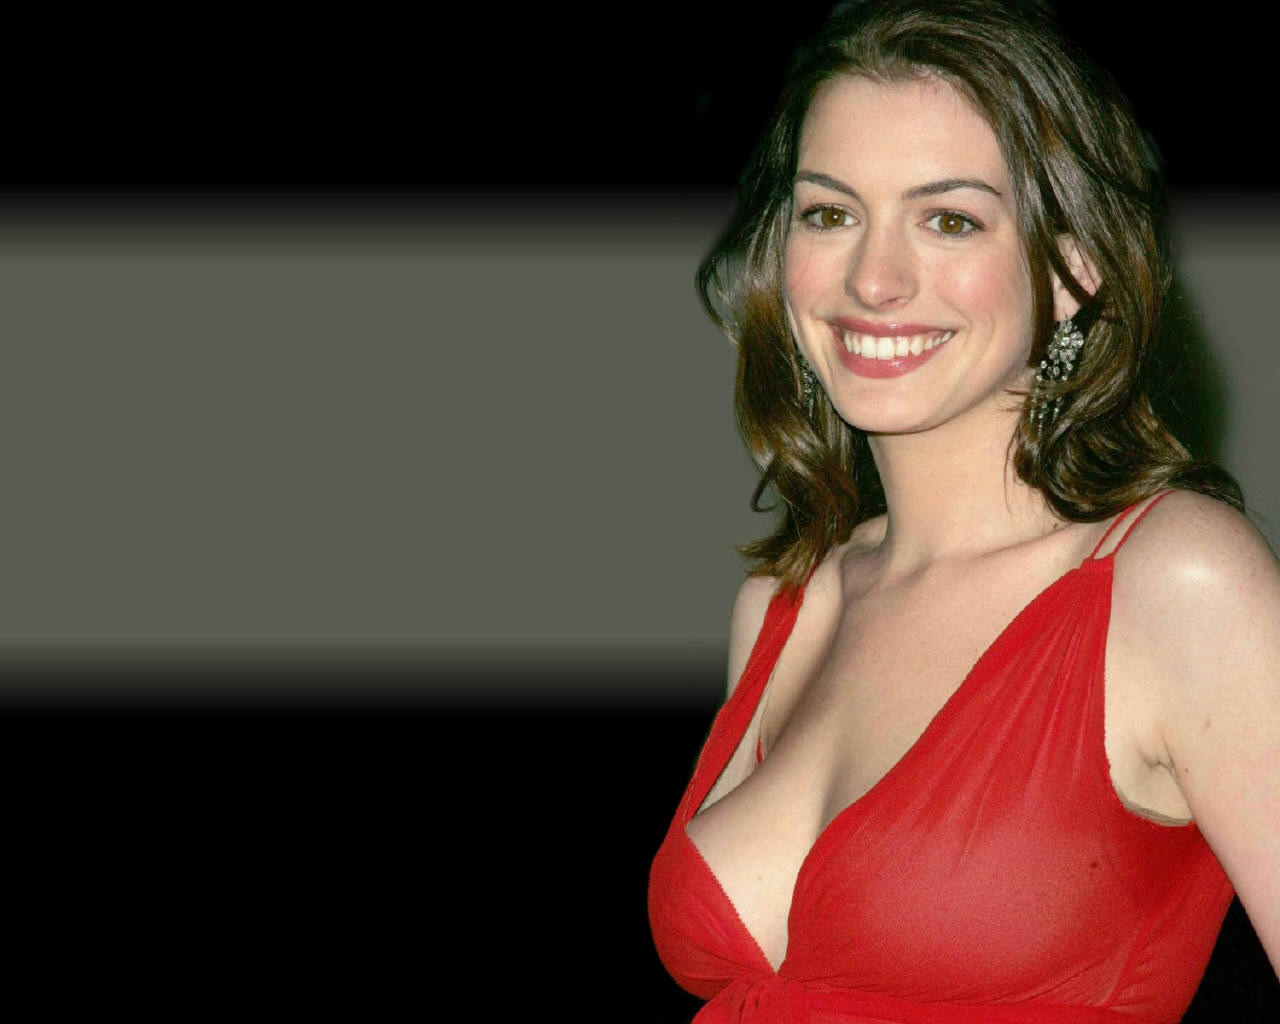 Pictures Of Anne Hathaway Naked 6